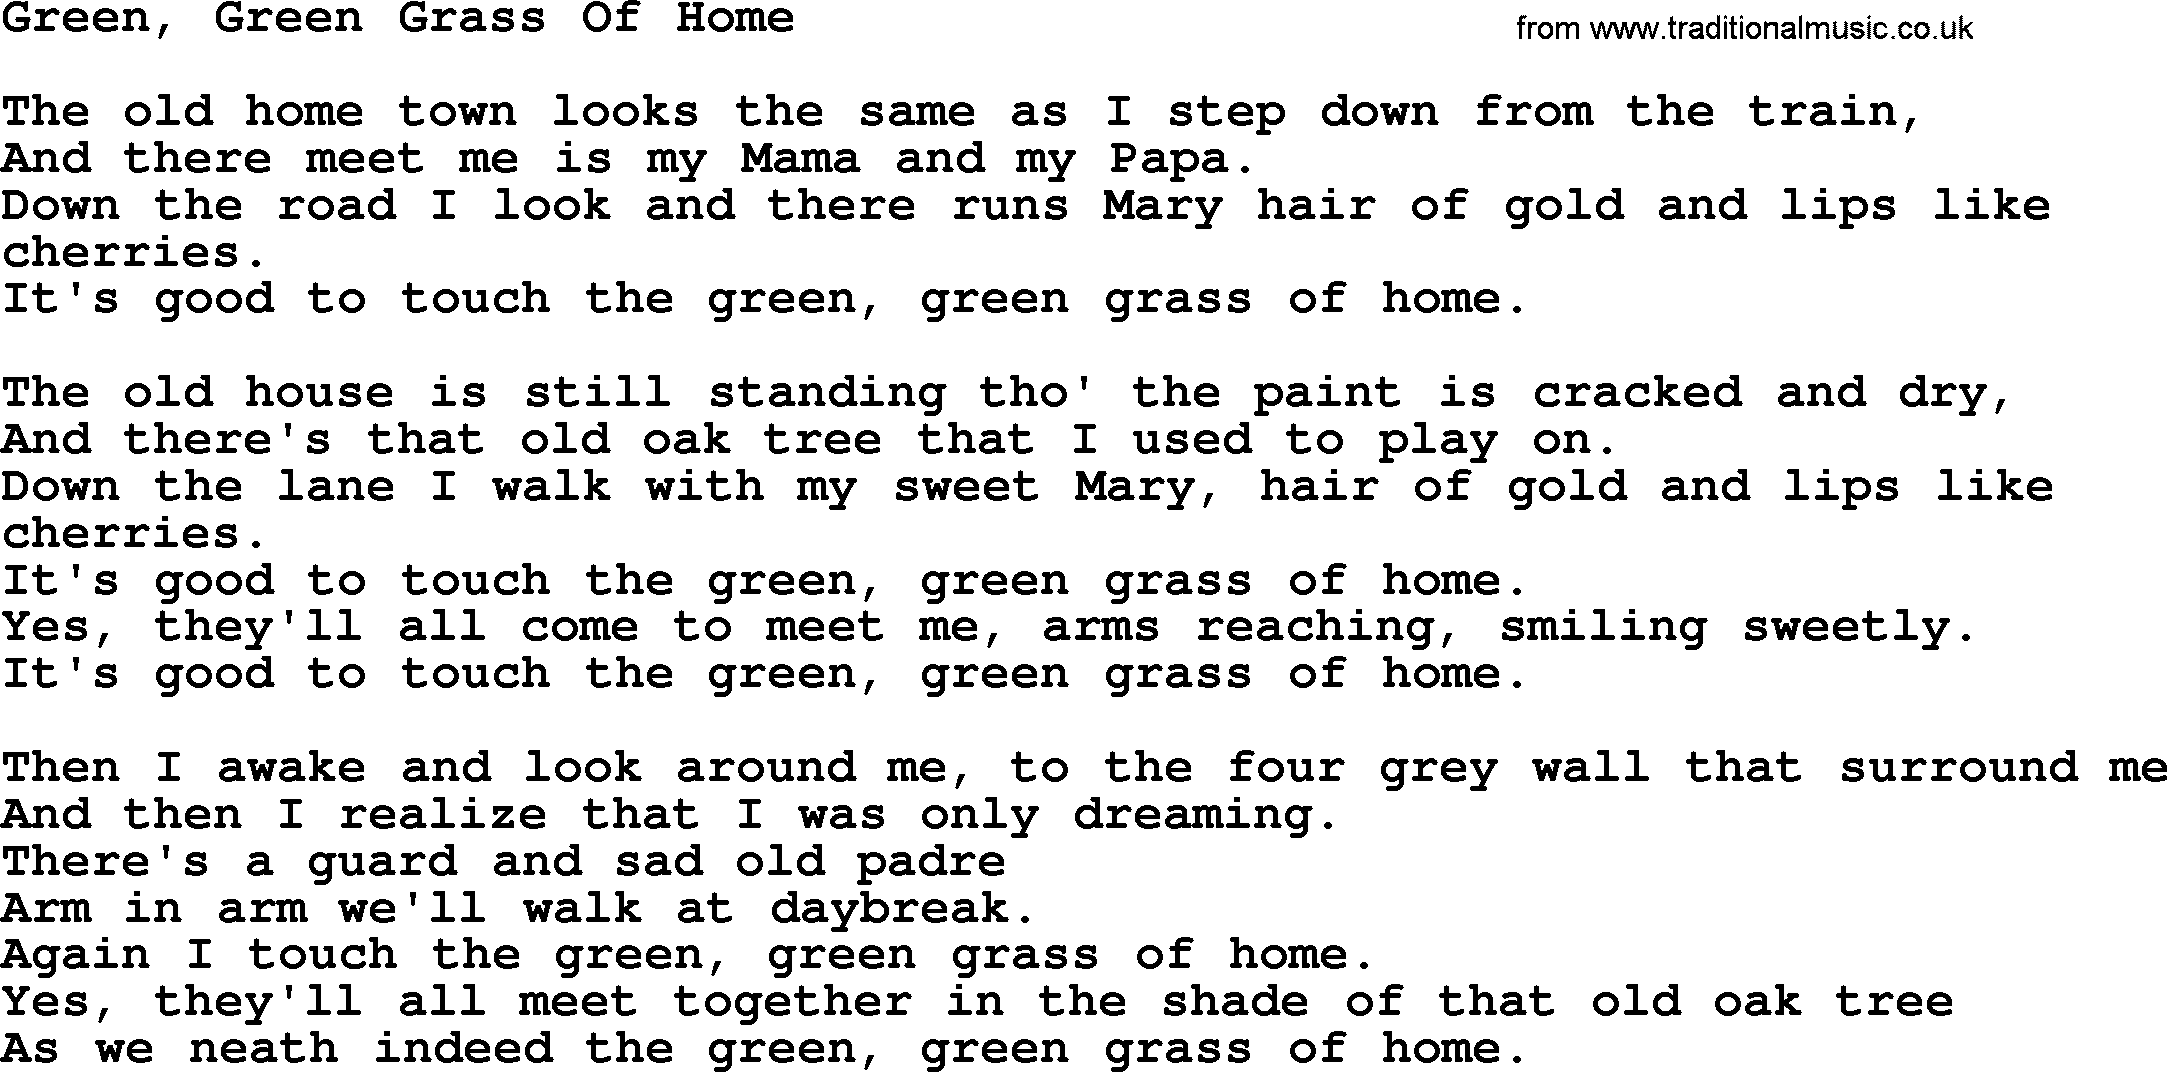 Joan Baez song - Green, Green Grass Of Home, lyrics